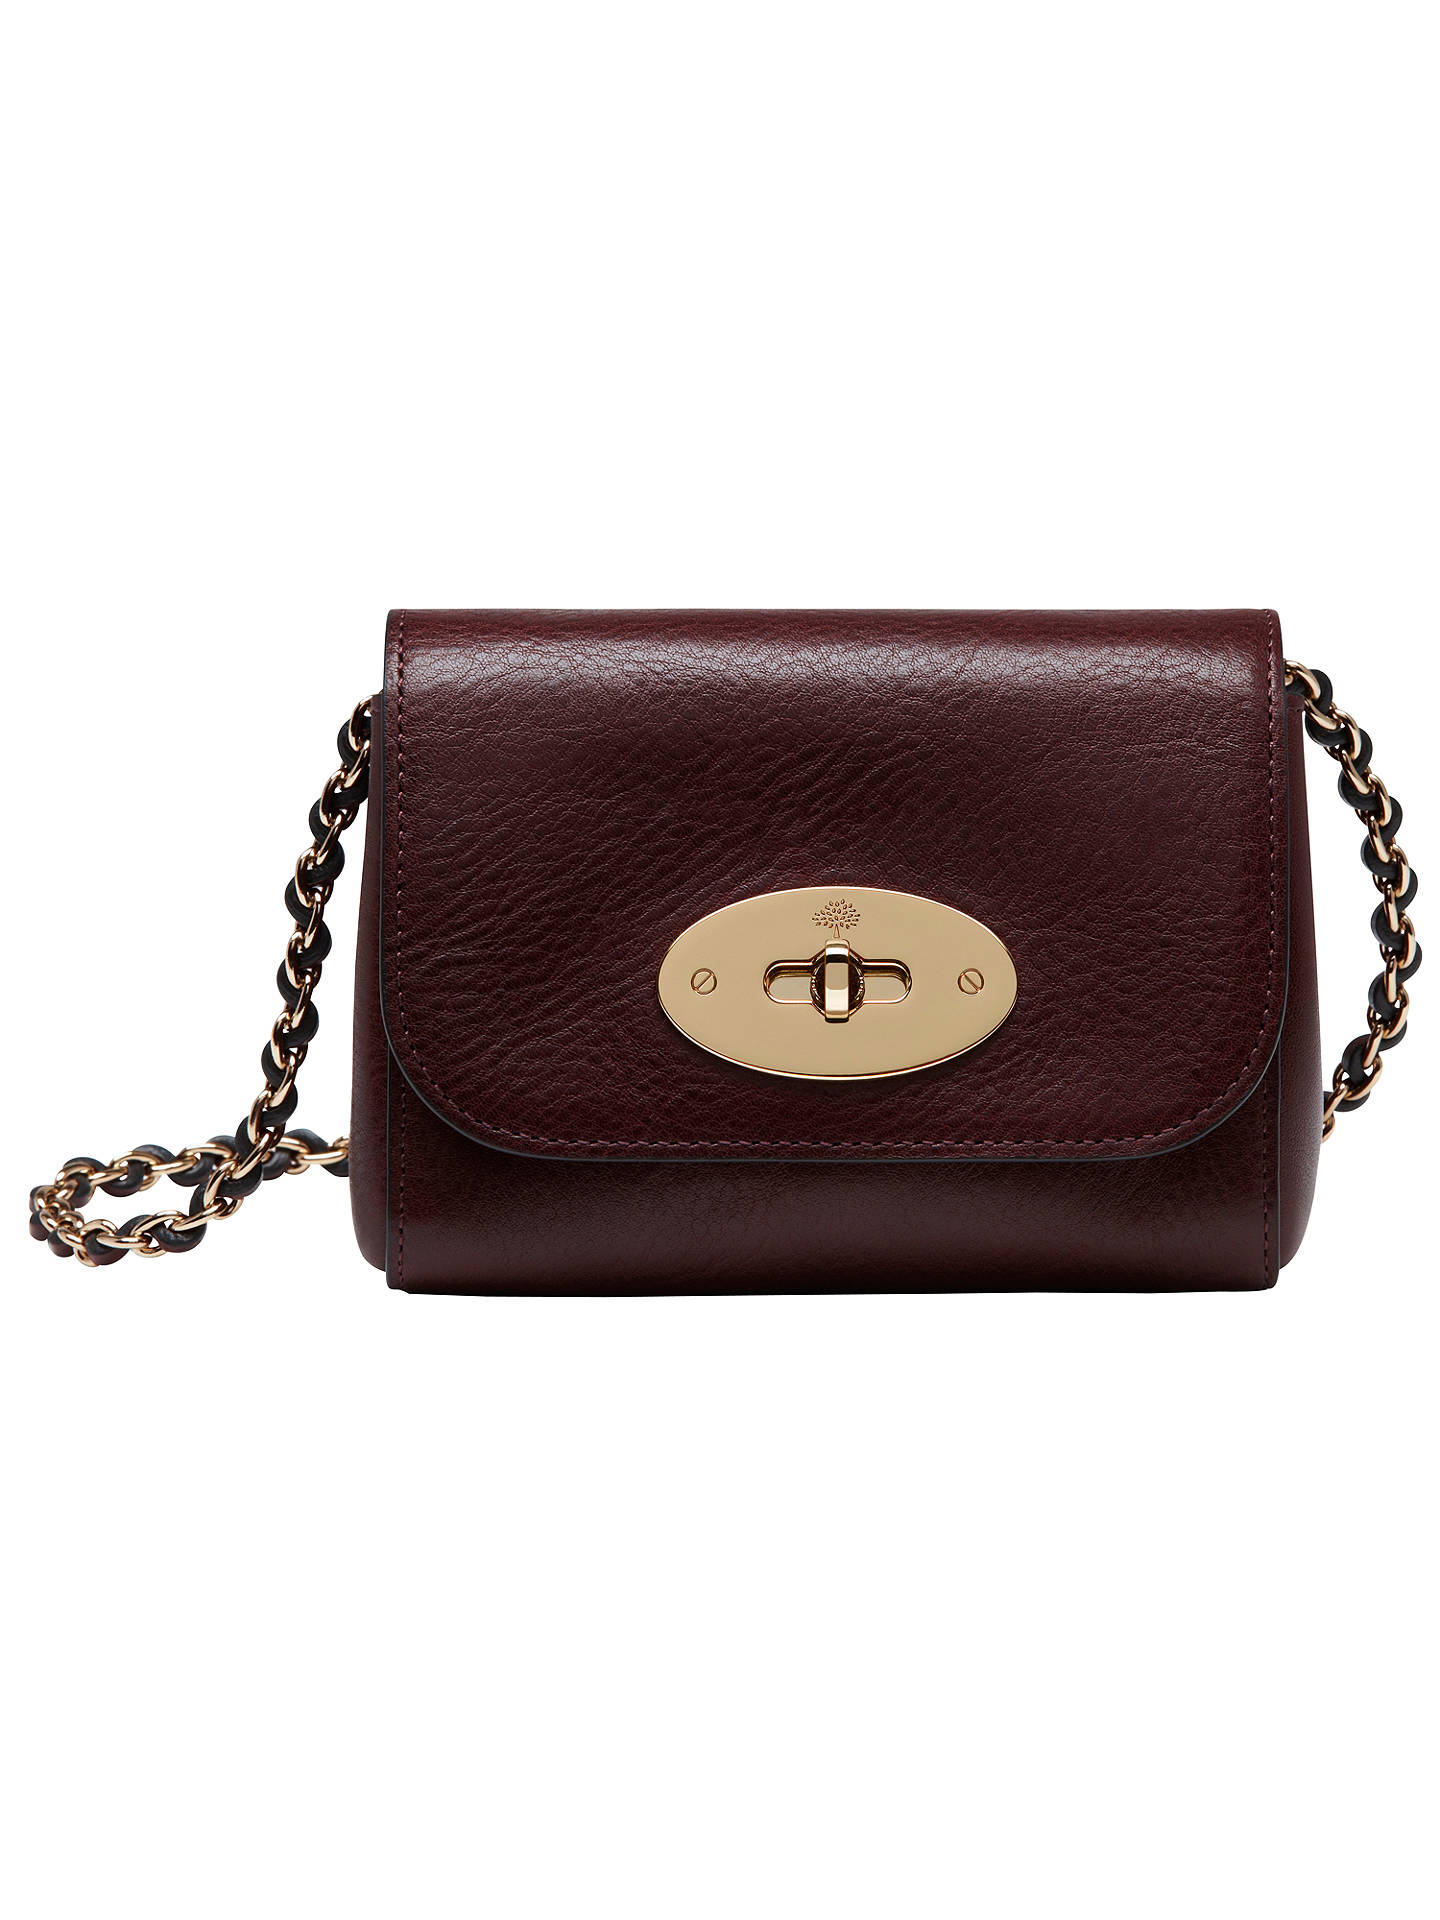 Mulberry New Lily Mini Leather Shoulder Bag Oxblood Online At Johnlewis